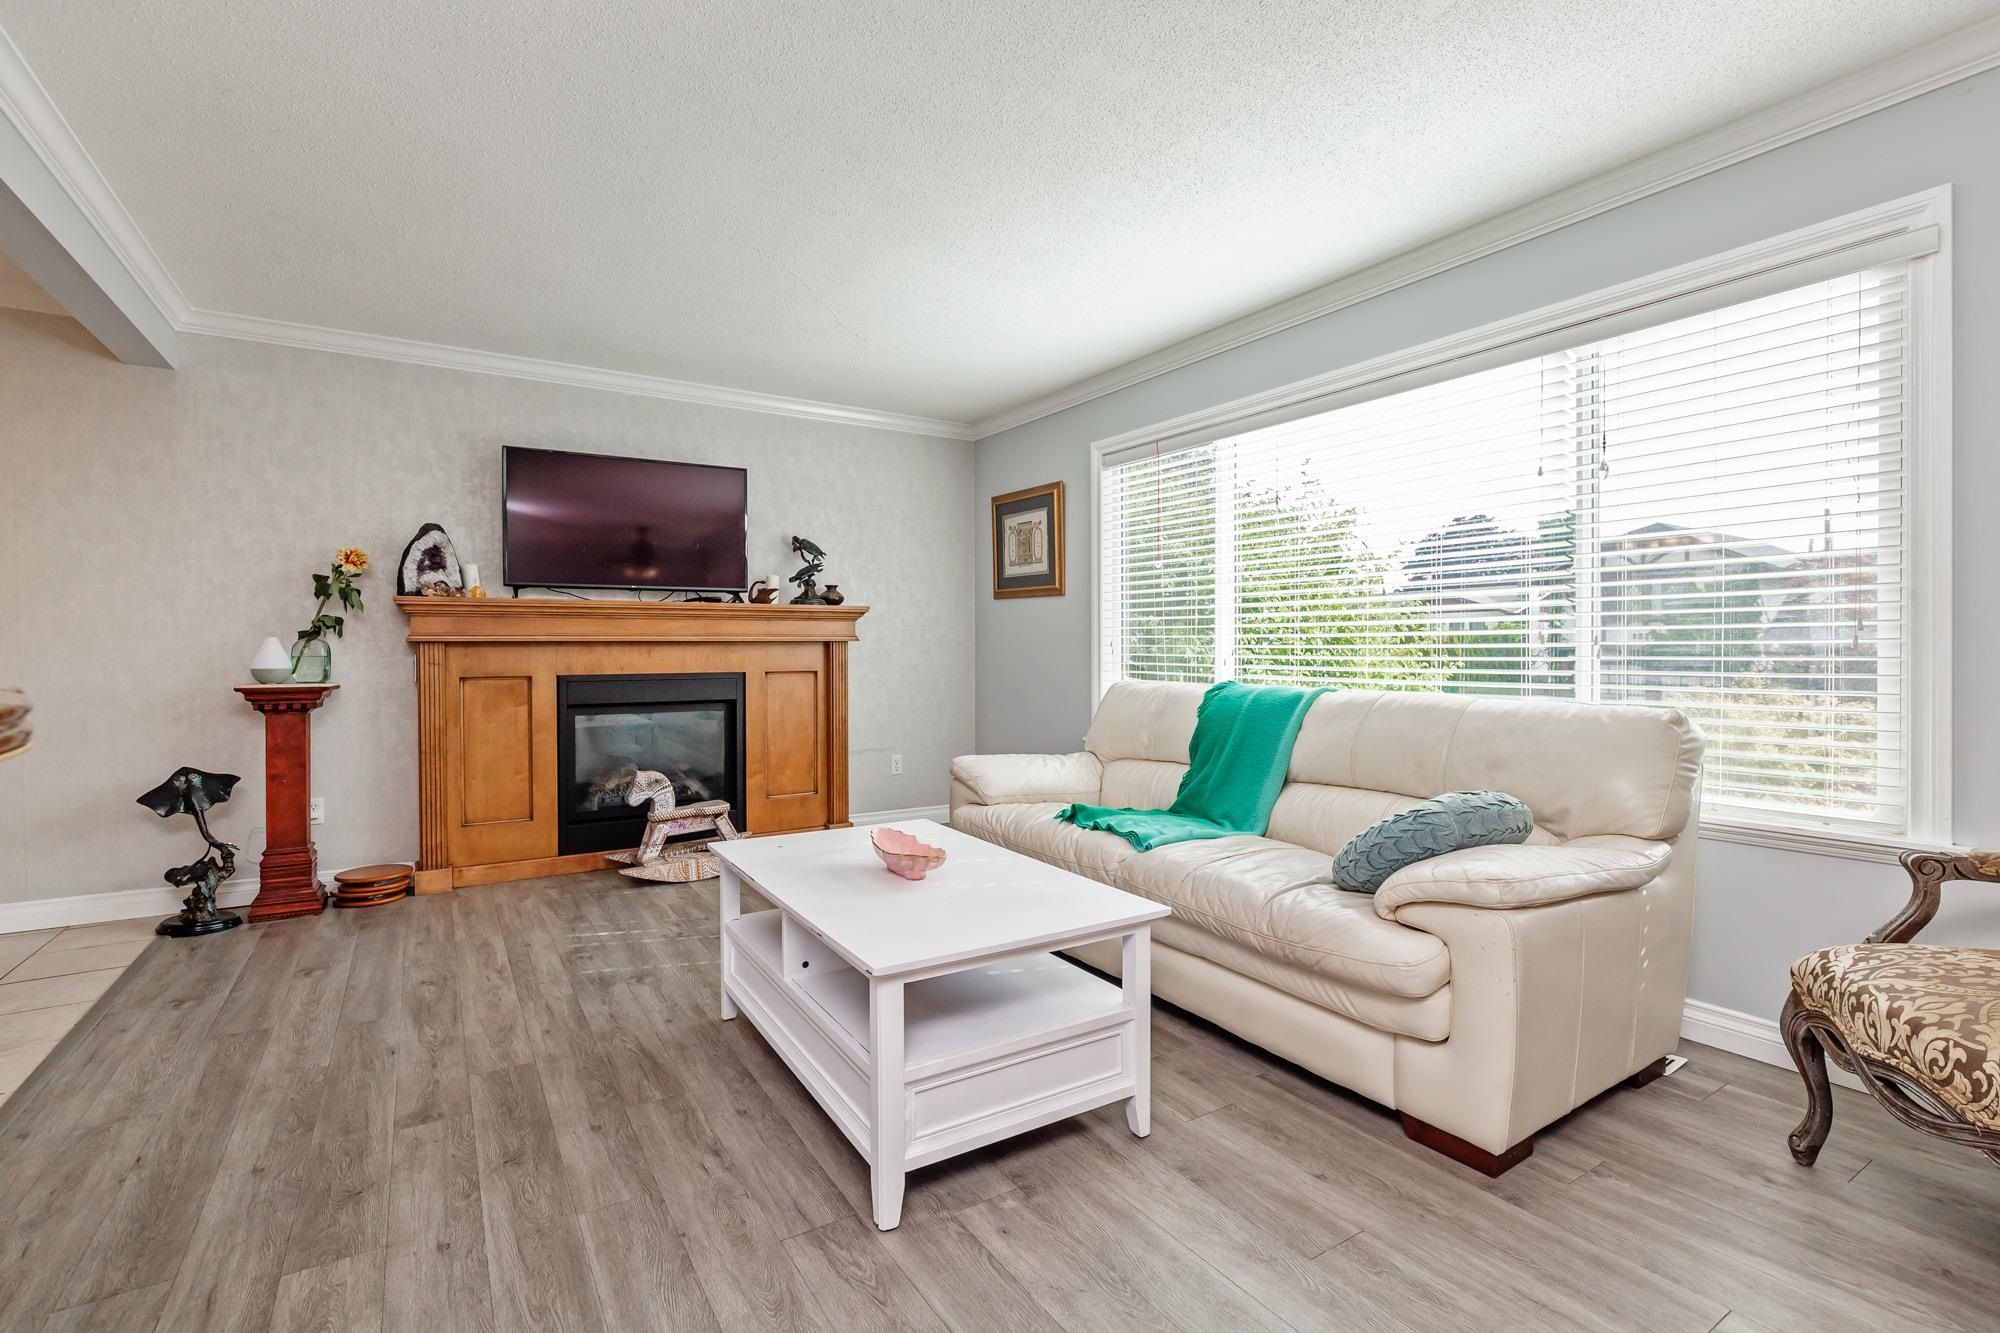 Photo 6: Photos: 32319 ATWATER Crescent in Abbotsford: Abbotsford West House for sale : MLS®# R2609136